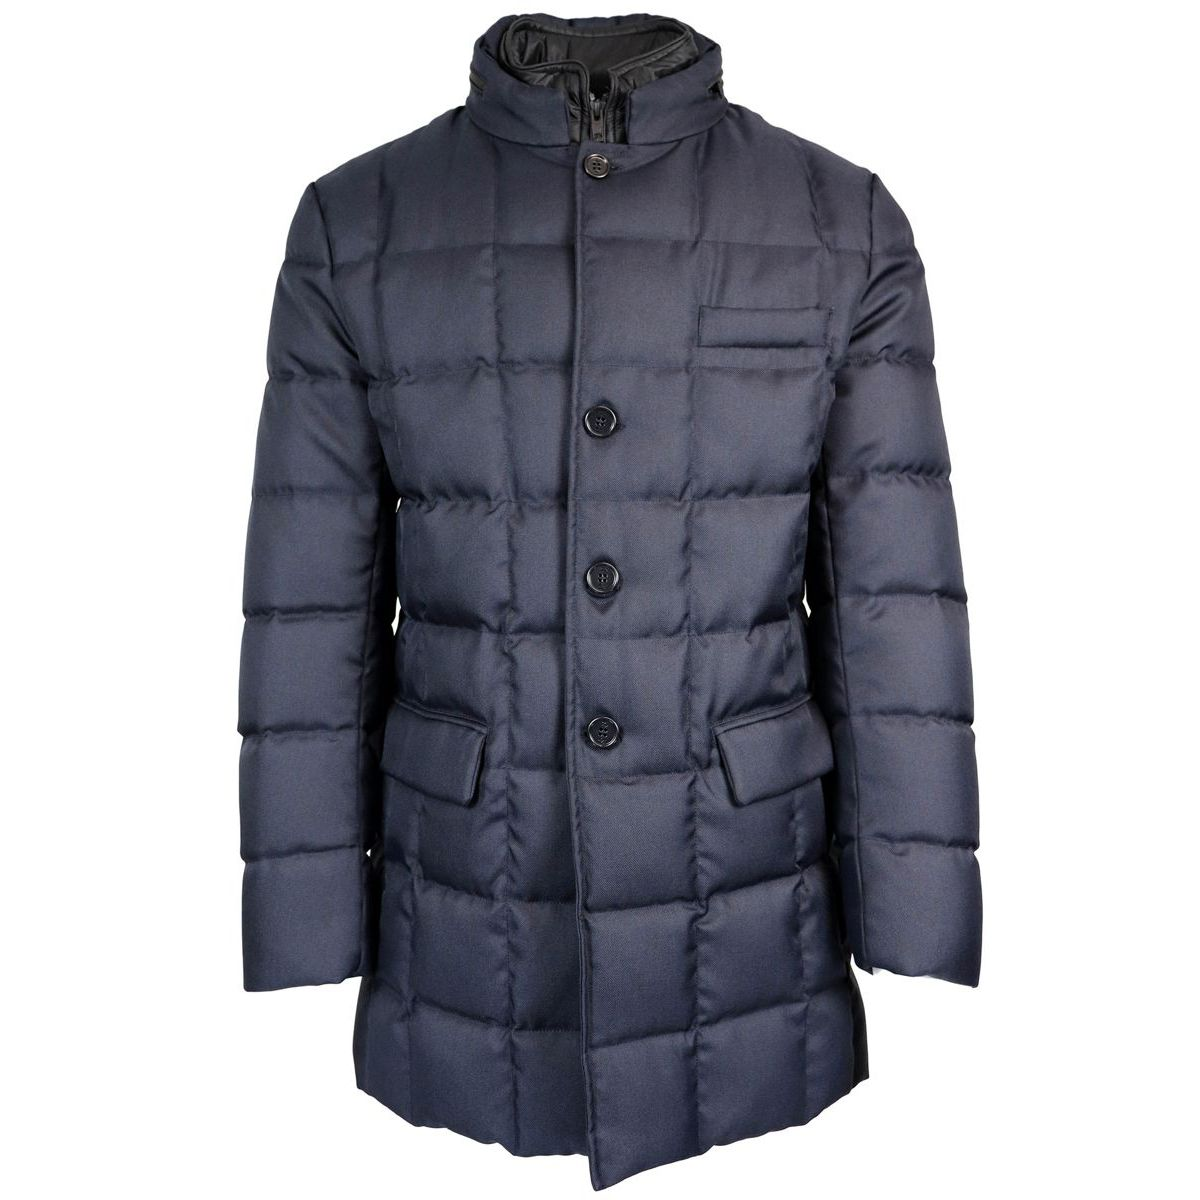 innovative design 21a6c b6670 Piumino in nylon impermeabile effetto lana con gilet